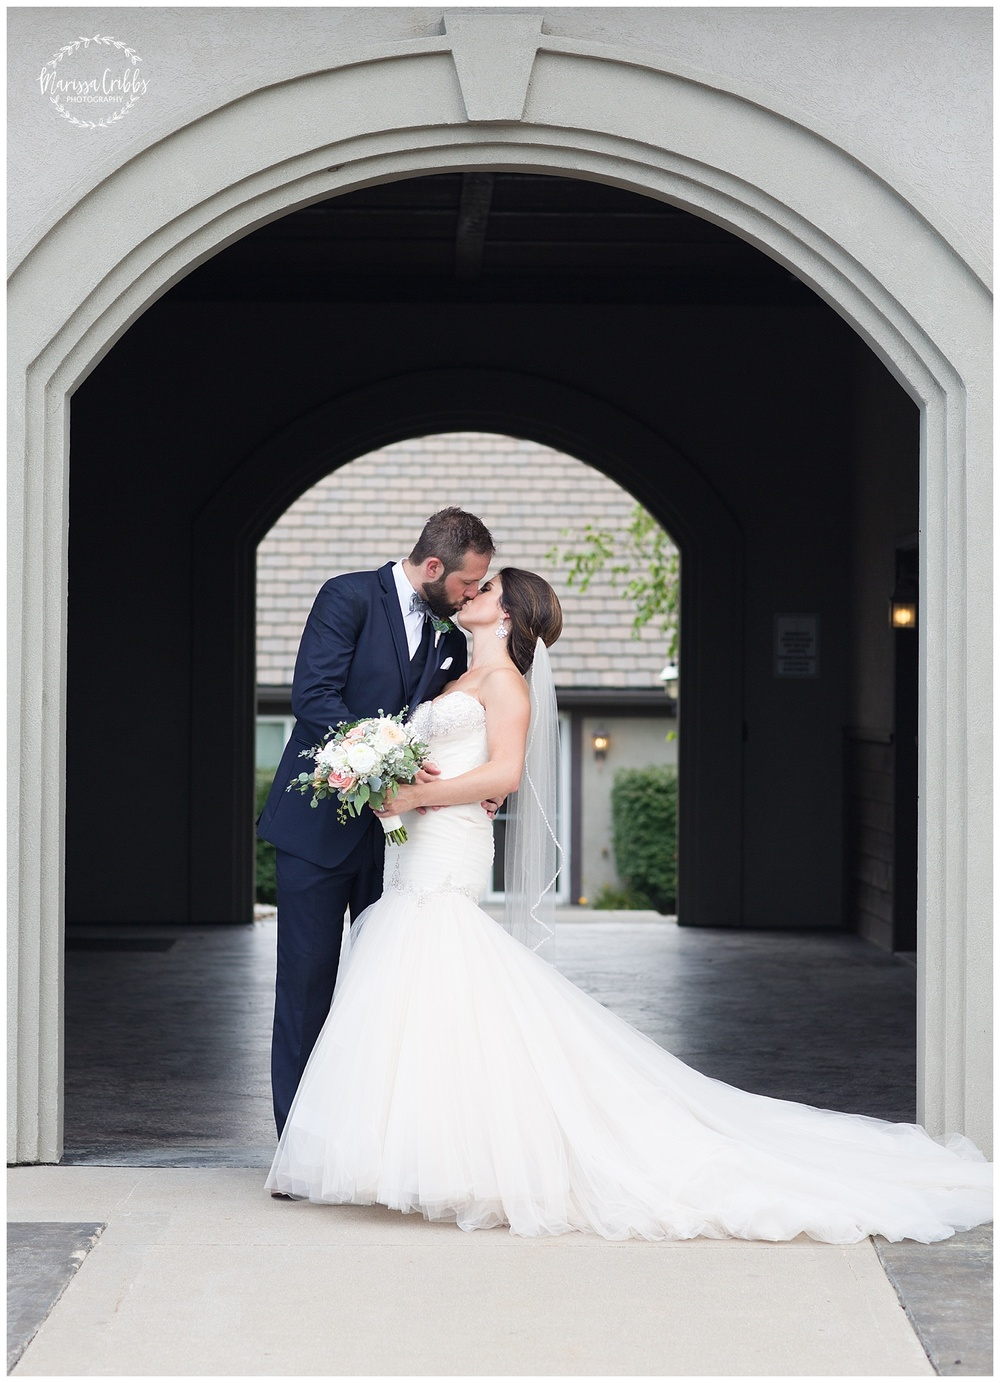 Stonehaus Winery Wedding | KC Wedding Photographer | Marissa Cribbs Photography | The Pavilion Event Space_0386.jpg